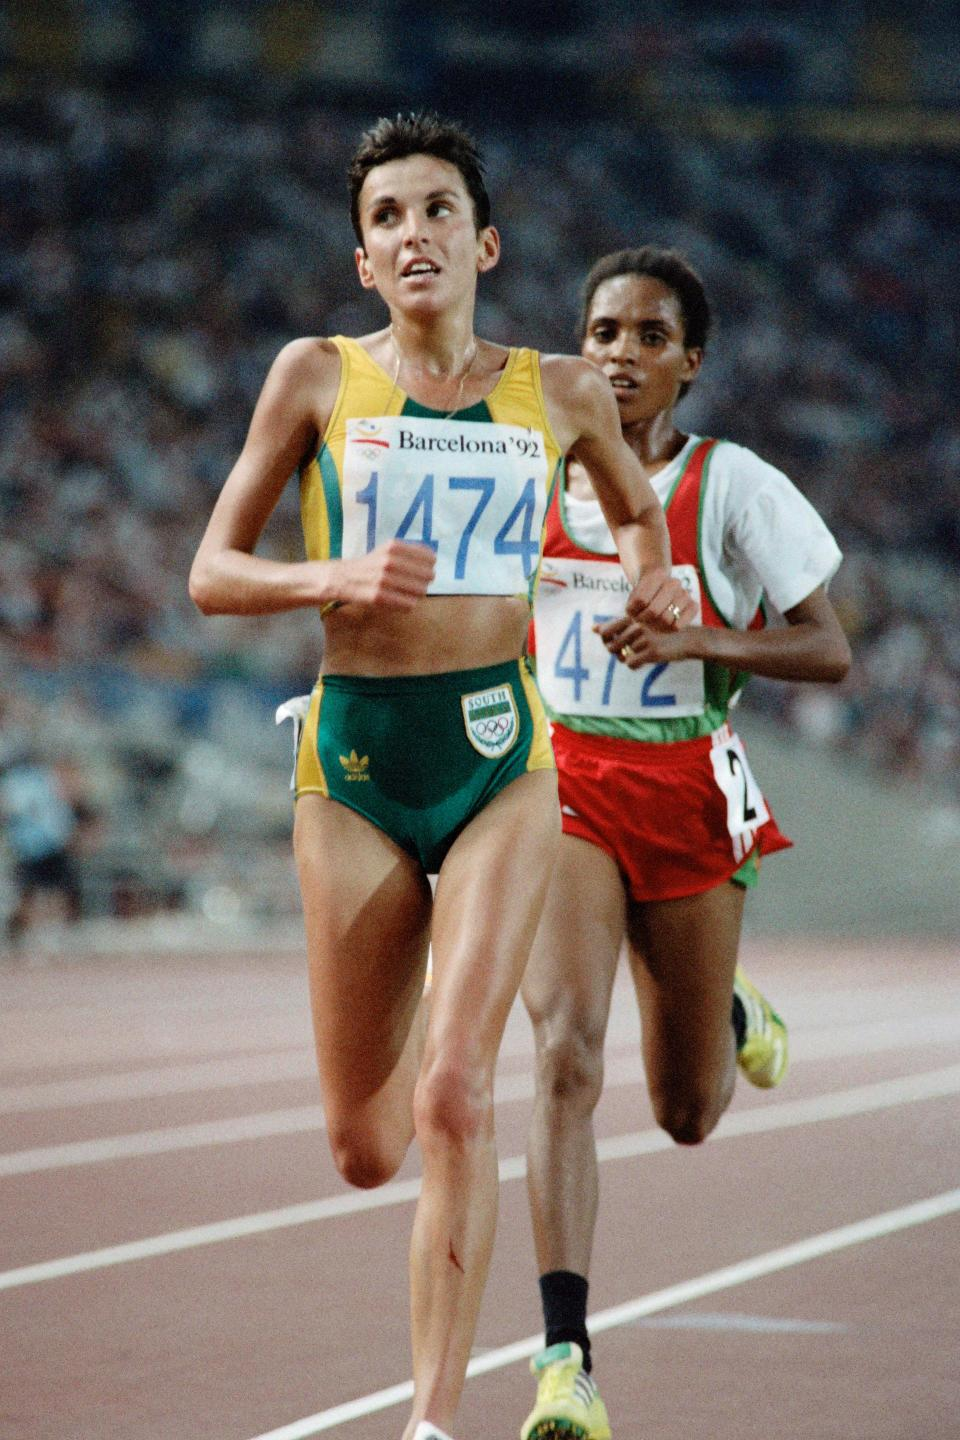 South African Elana Meyer leads the woman's 10,000m final followed by Ethiopia's Derartu Tulu at the athletics event during the Barcelona 1992 Olympic Games on August 7, 1992 in Barcelona.  Tulu won the Olympic gold medal and Meyer took the silver. / AFP PHOTO / Pascal PAVANI        (Photo credit should read PASCAL PAVANI/AFP via Getty Images)